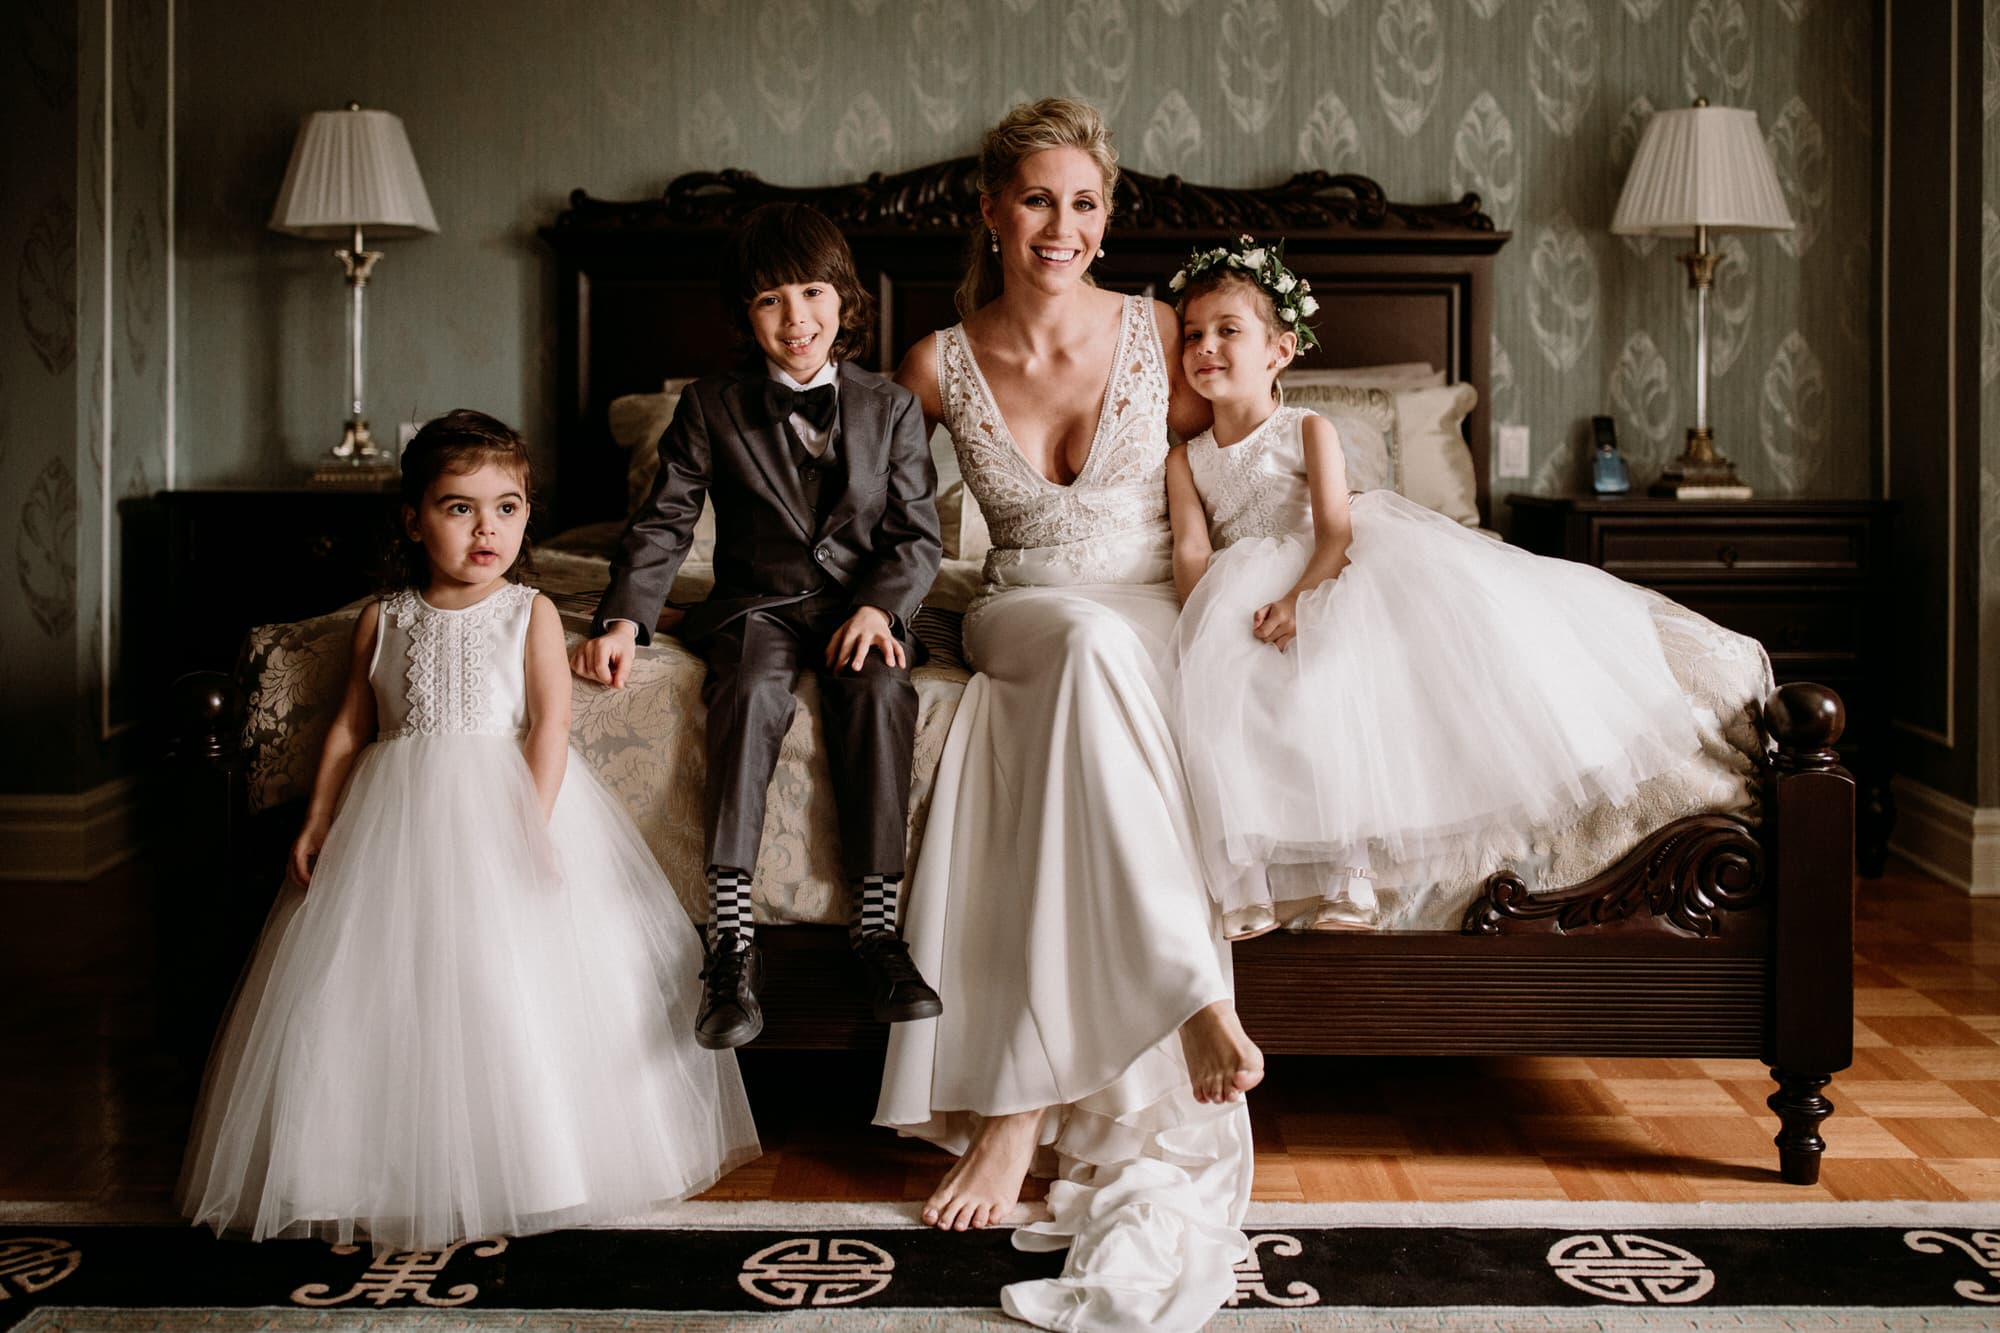 Entrepots Dominion Wedding In Montreal - Bride with flower girls - Wedding Photographer Brent Calis